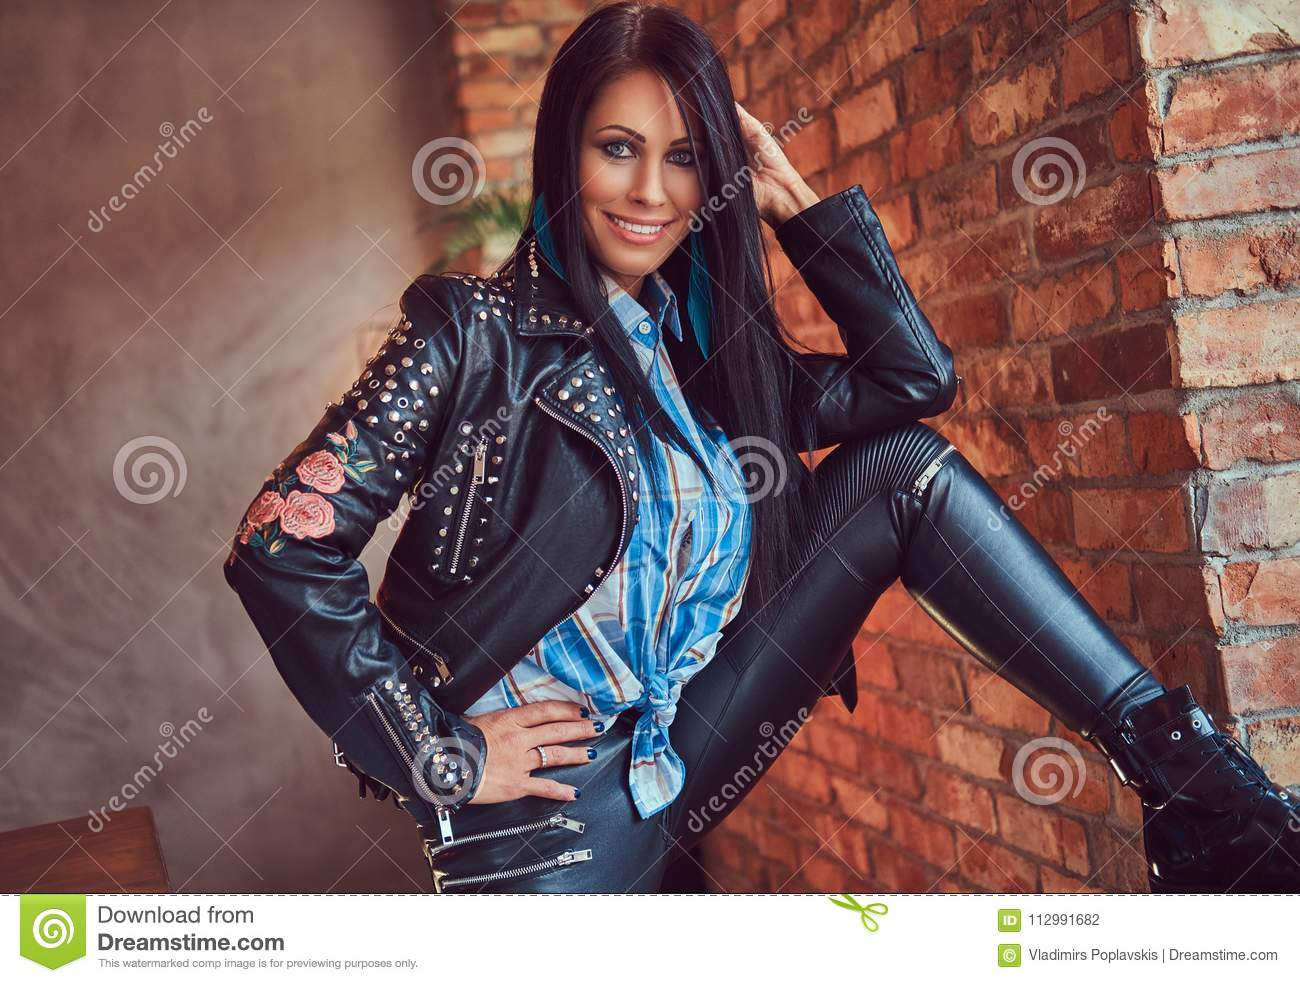 Portrait of a brunette in leather jeans and jacket posing against a brick wall in a room with a loft interior.